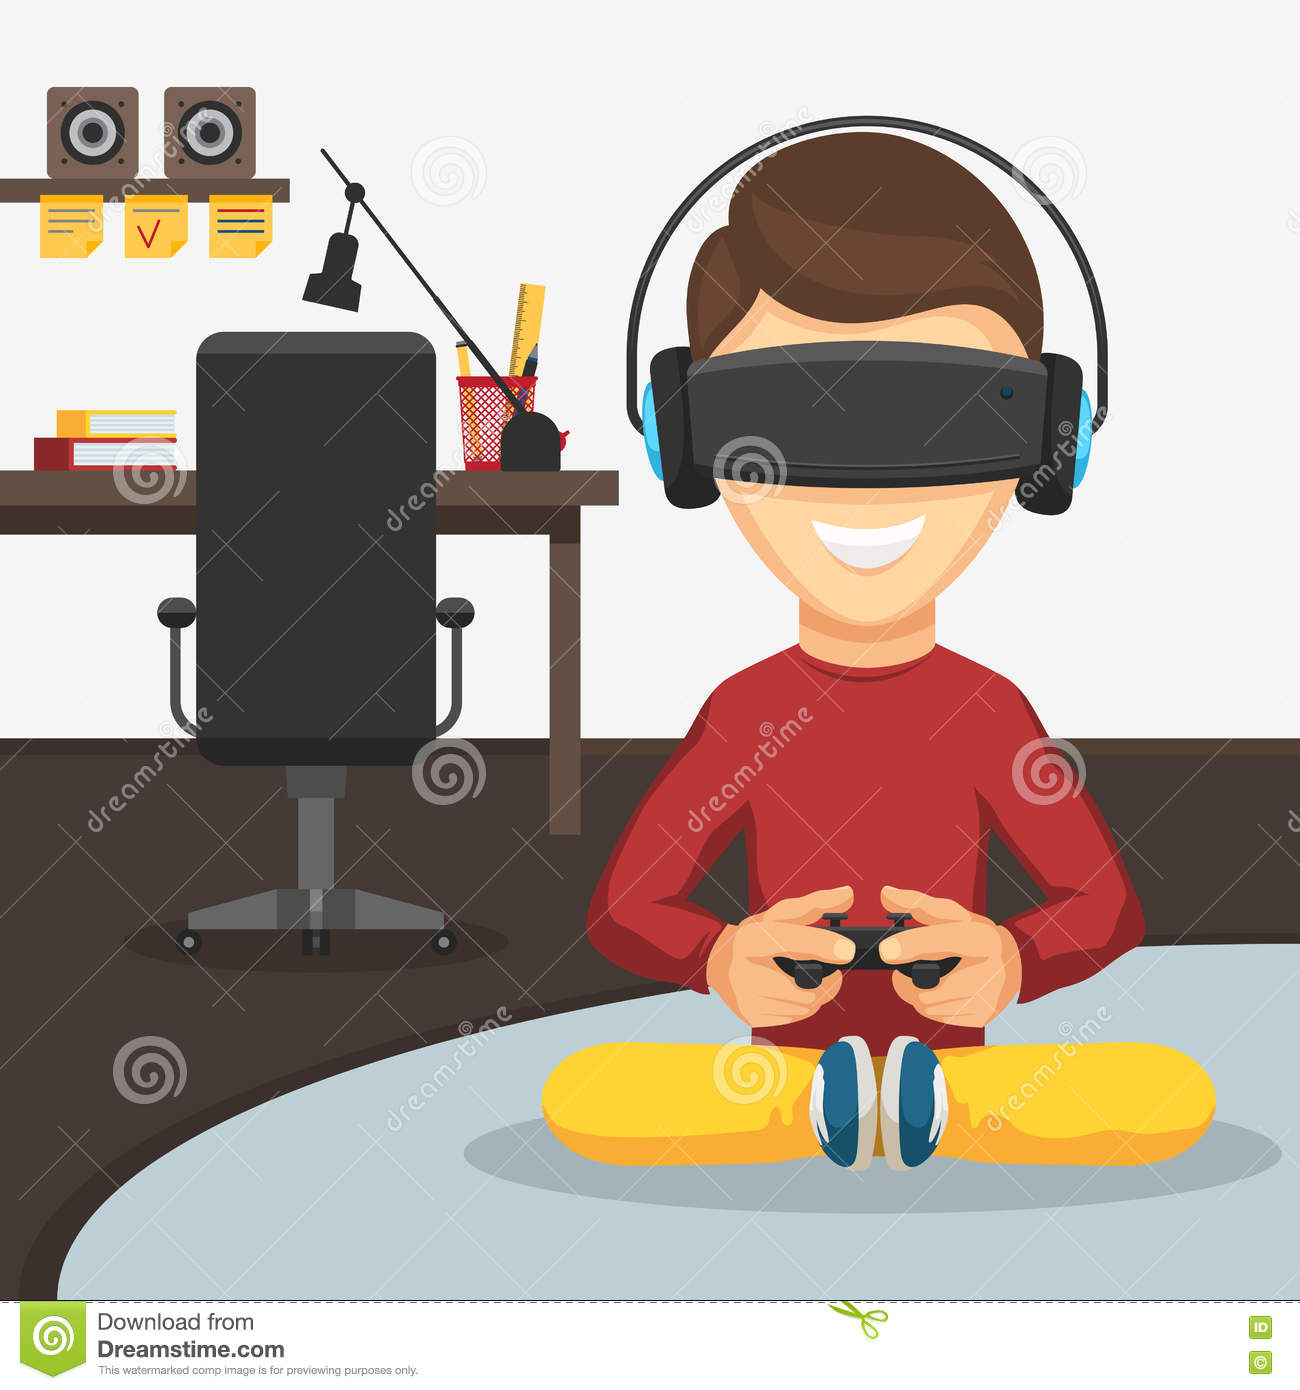 Boy In Virtual Reality Glasses Stock Vector - Illustration